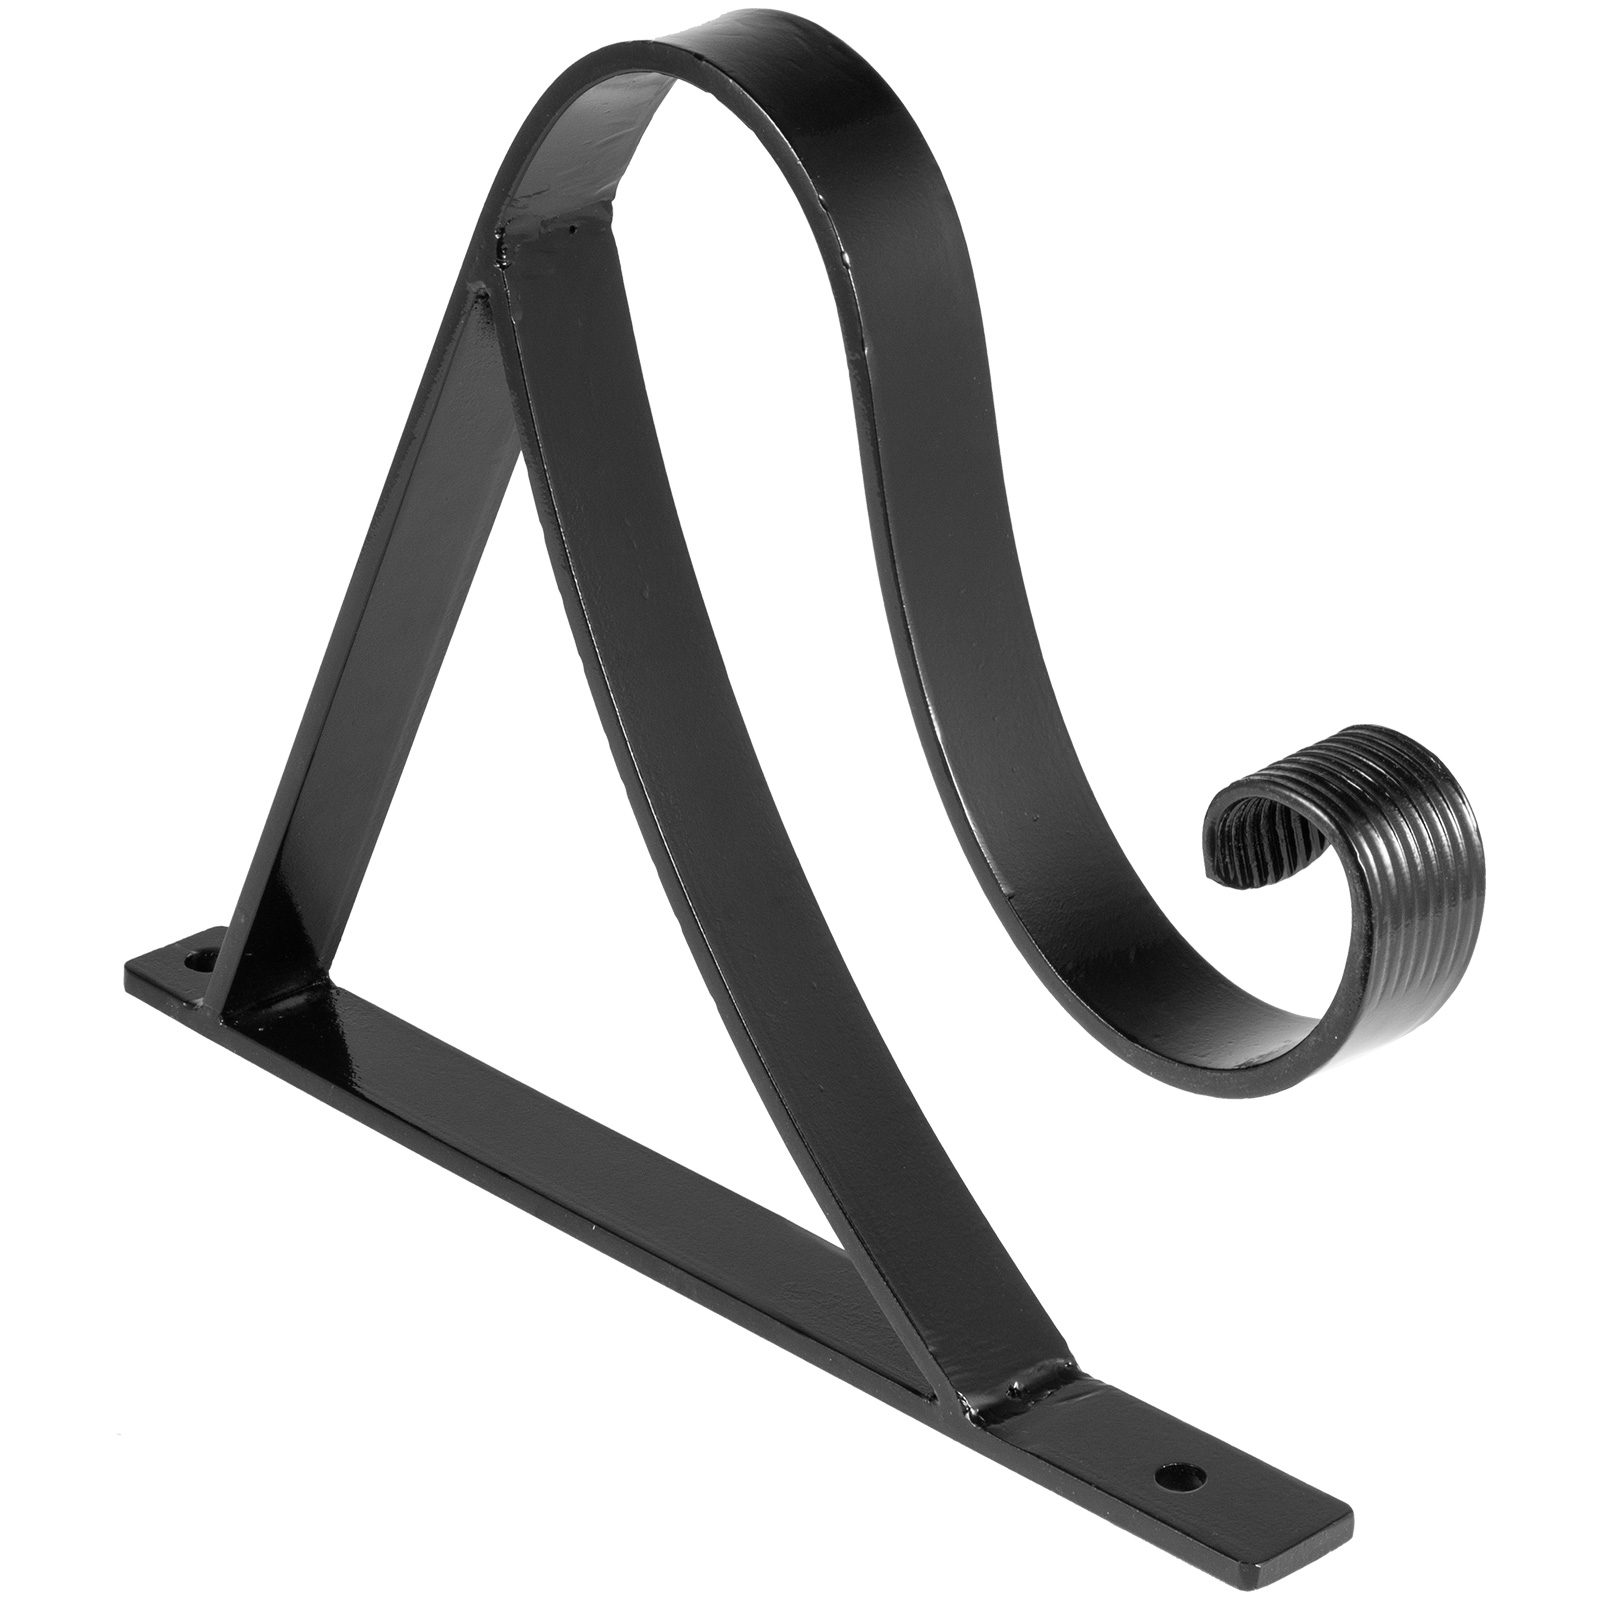 Handrails-for-Outdoor-Step-Wrought-Iron-Handrail-20-034-Length-Porch-Deck-Railing thumbnail 107